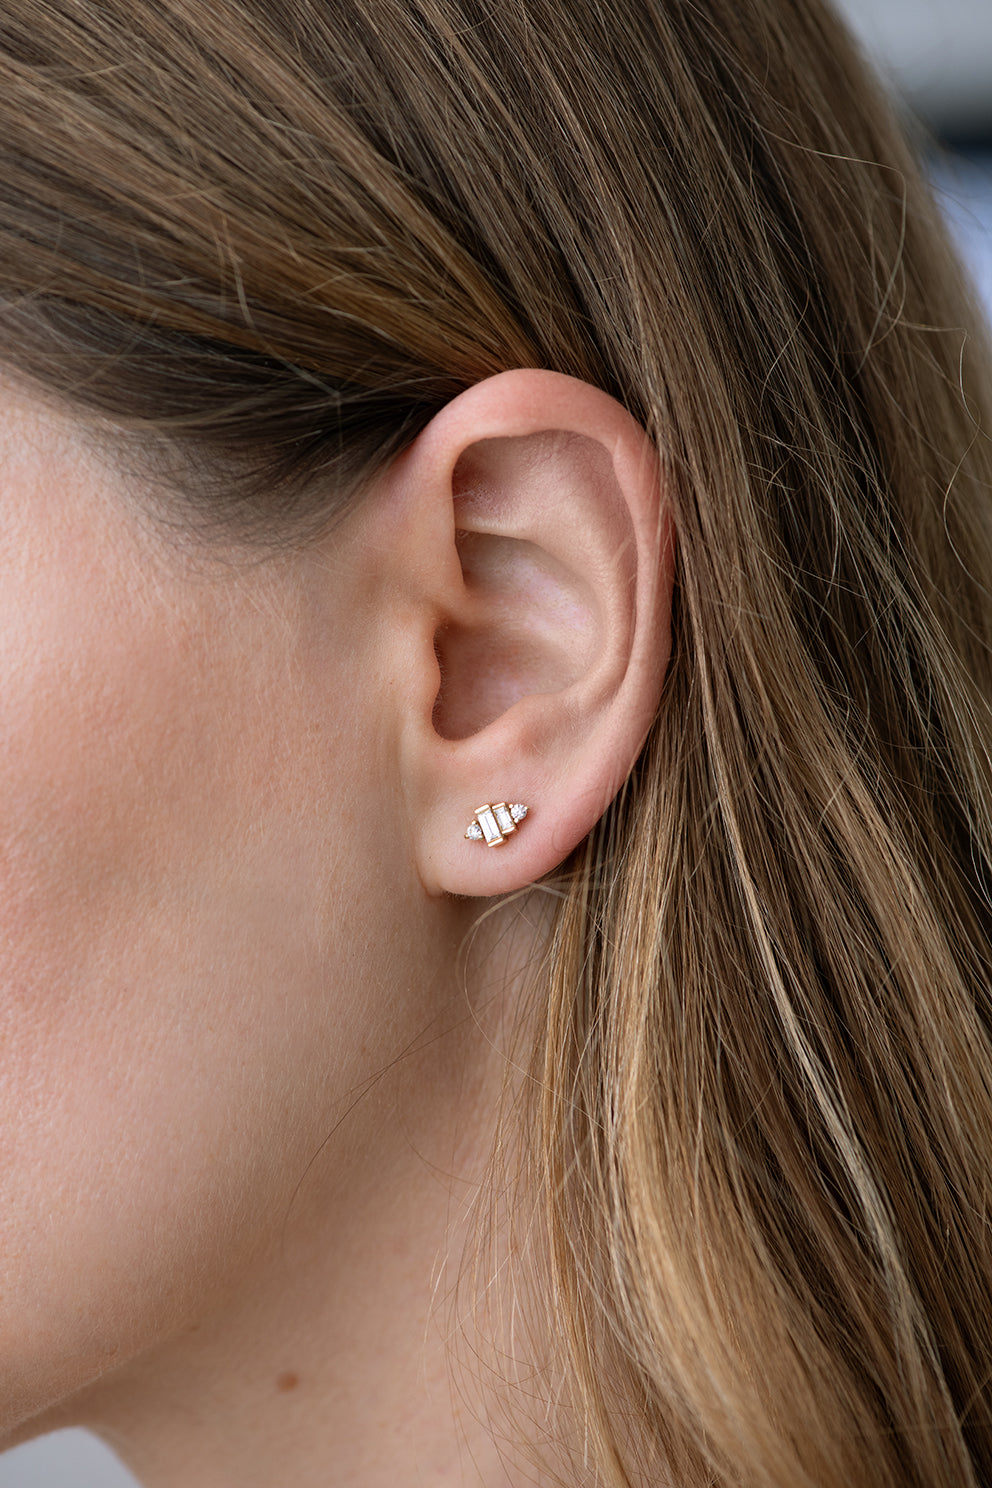 Baguette Diamond Earrings on Ear Alternate View